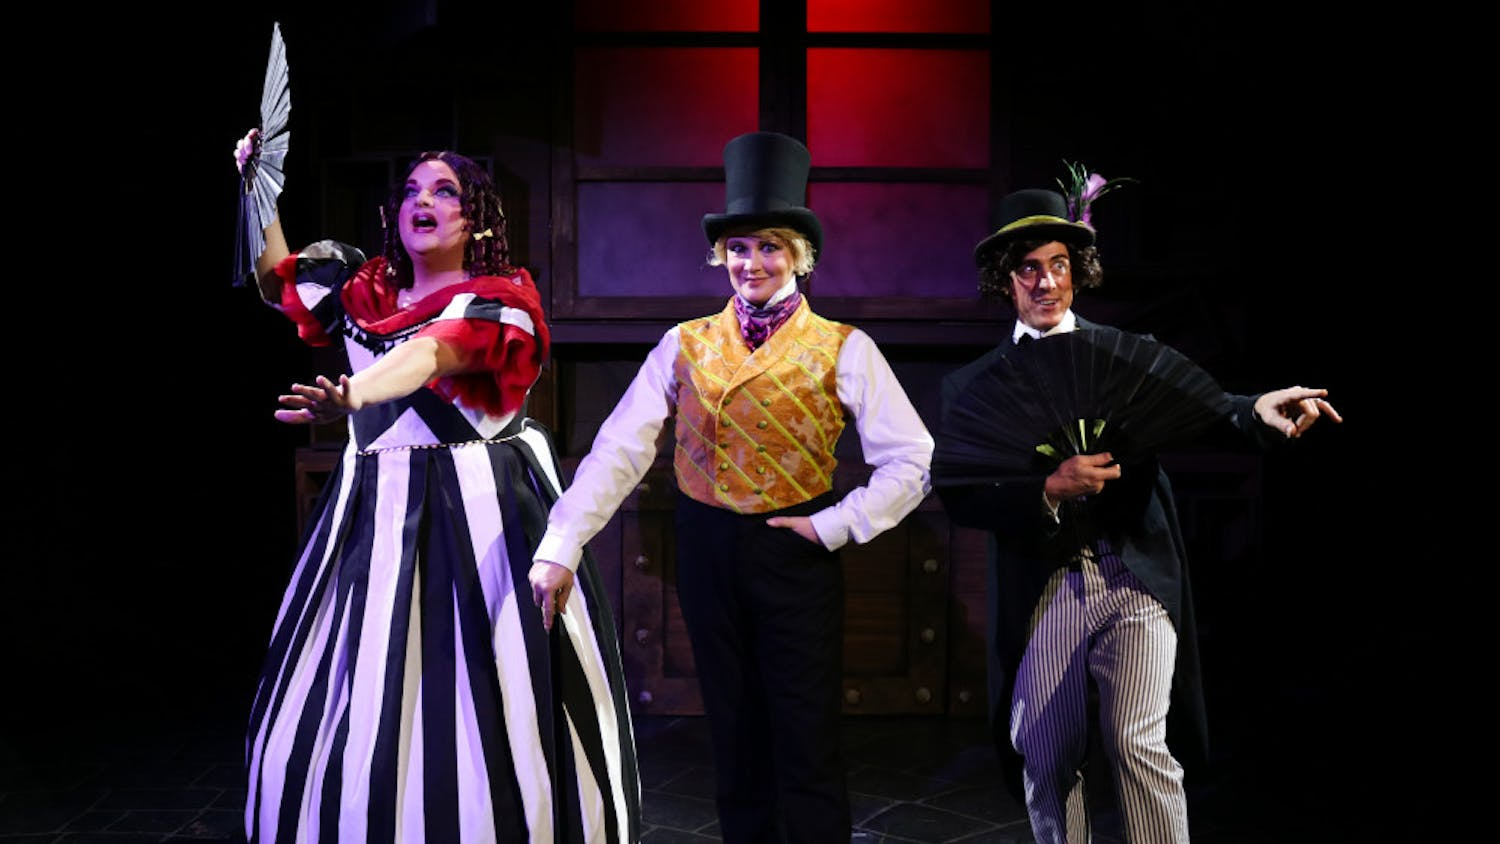 """Actors Matthew McGee, Kelly Atkins and David Patrick Ford take center stage in costume for their roles in the Hippodrome's """"Scrooge in Rouge."""""""